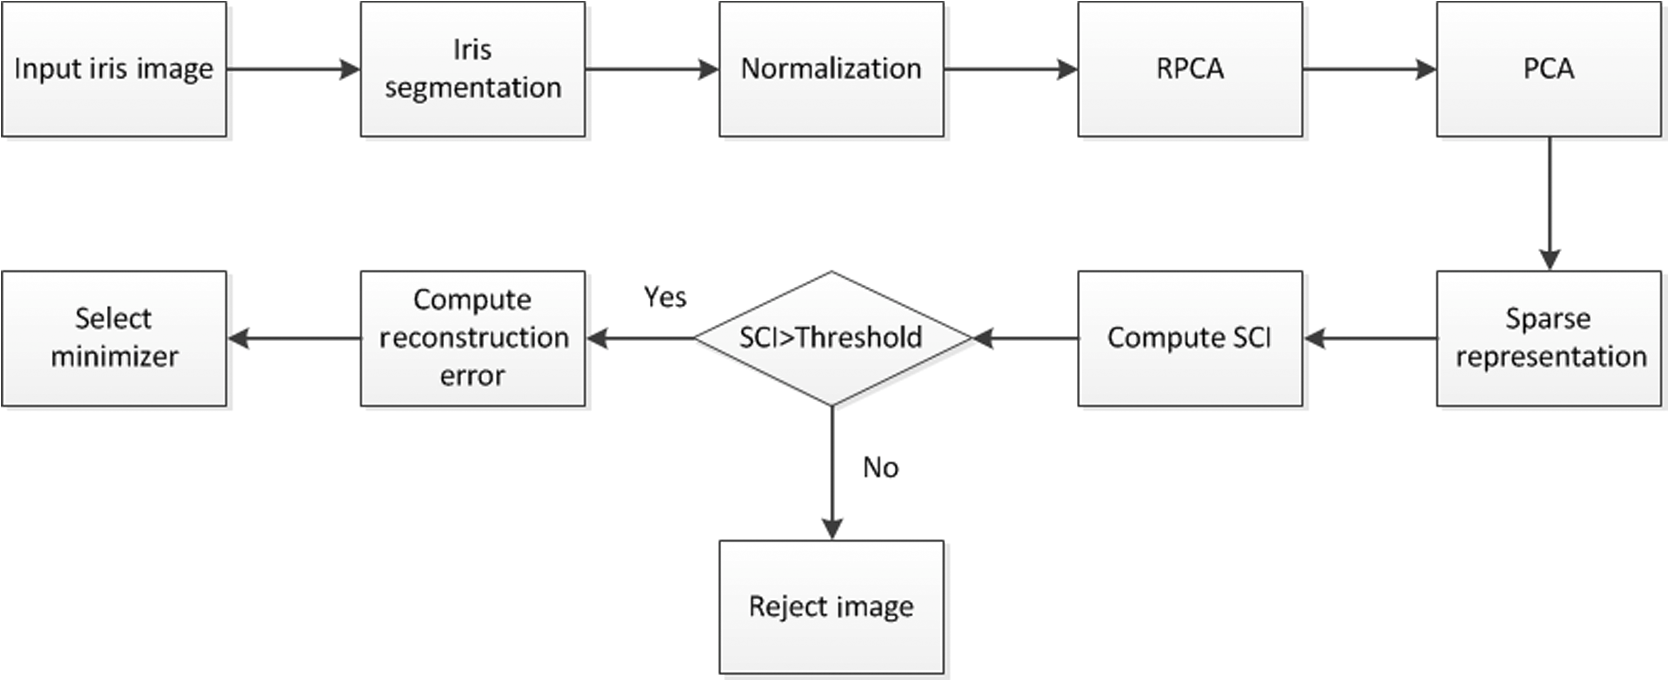 Iris recognition based on robust principal component analysis